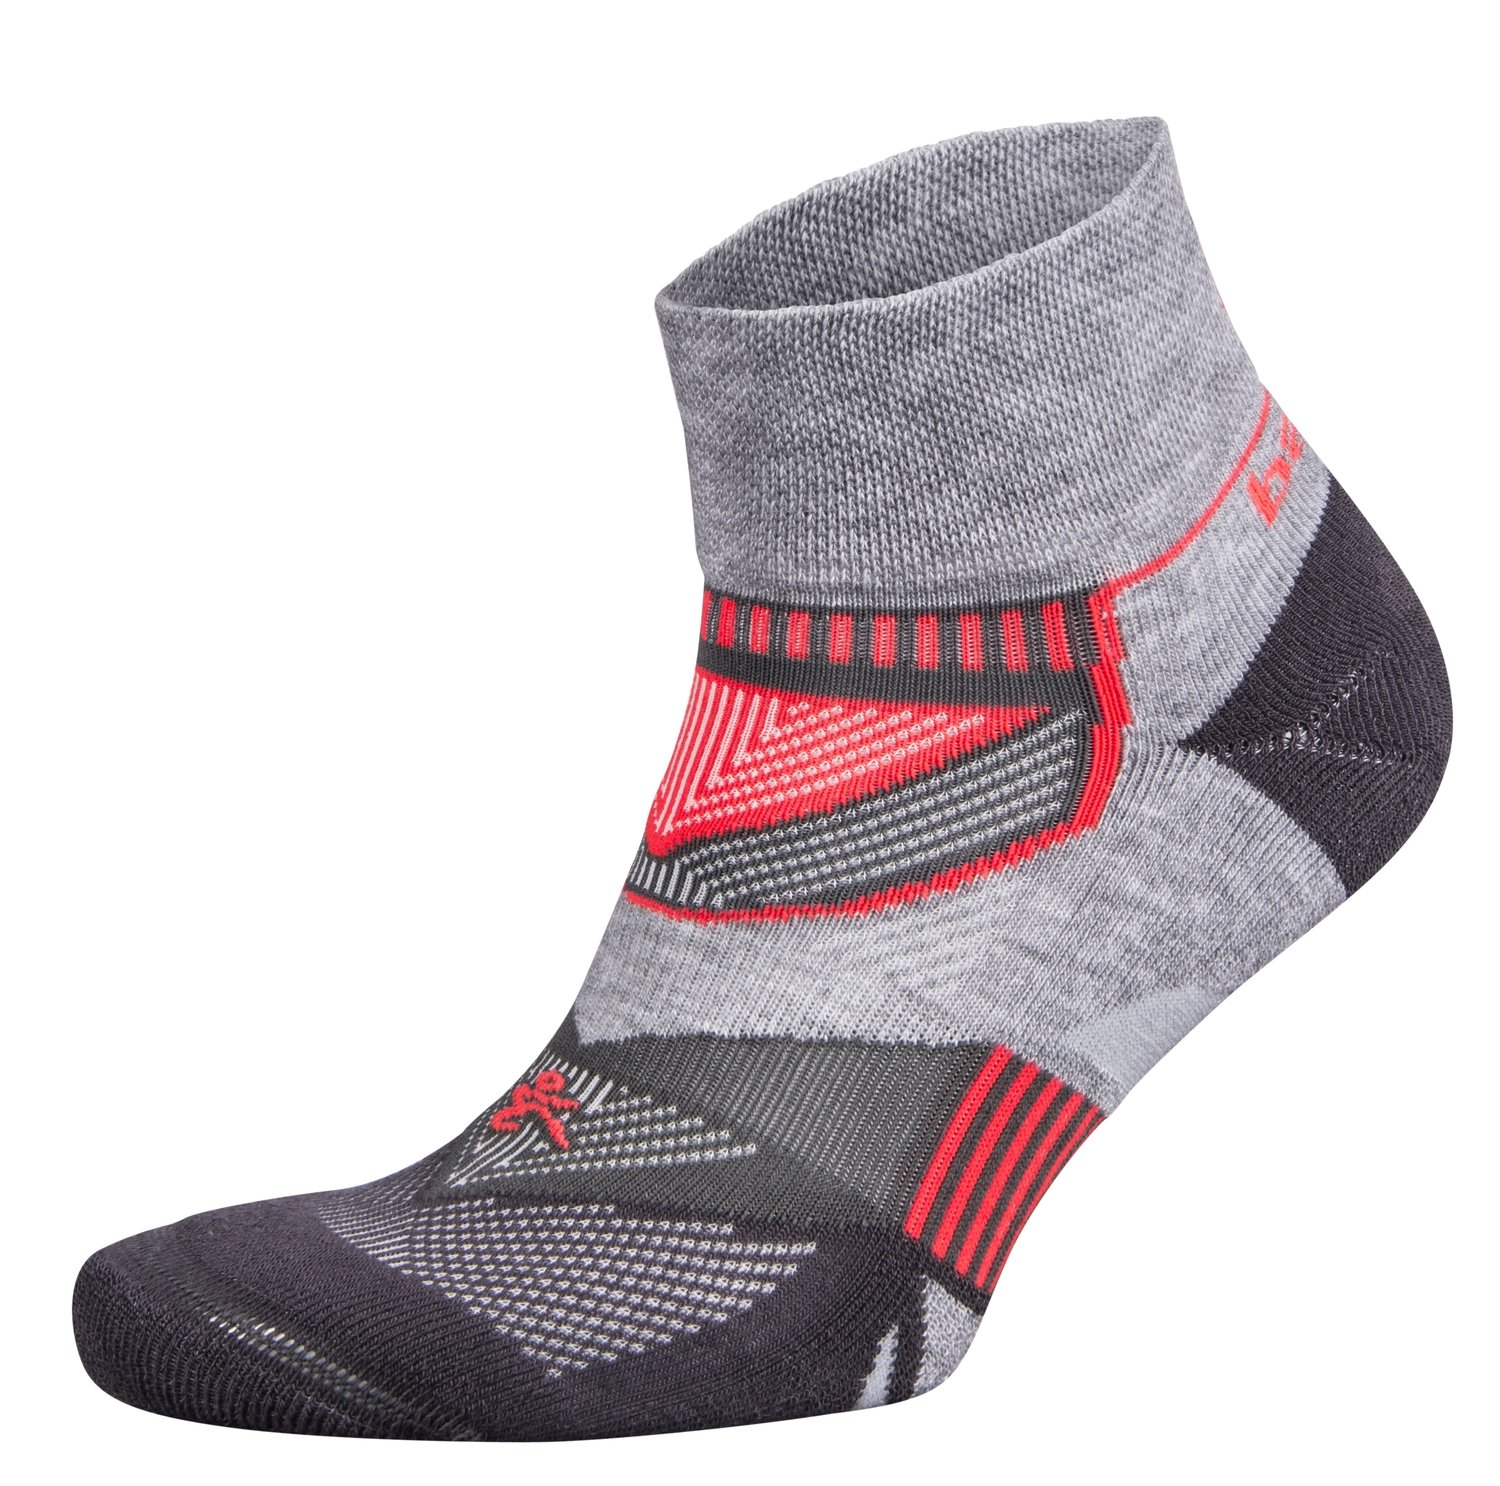 Enduro Quarter Socks MidGrey/Carbon